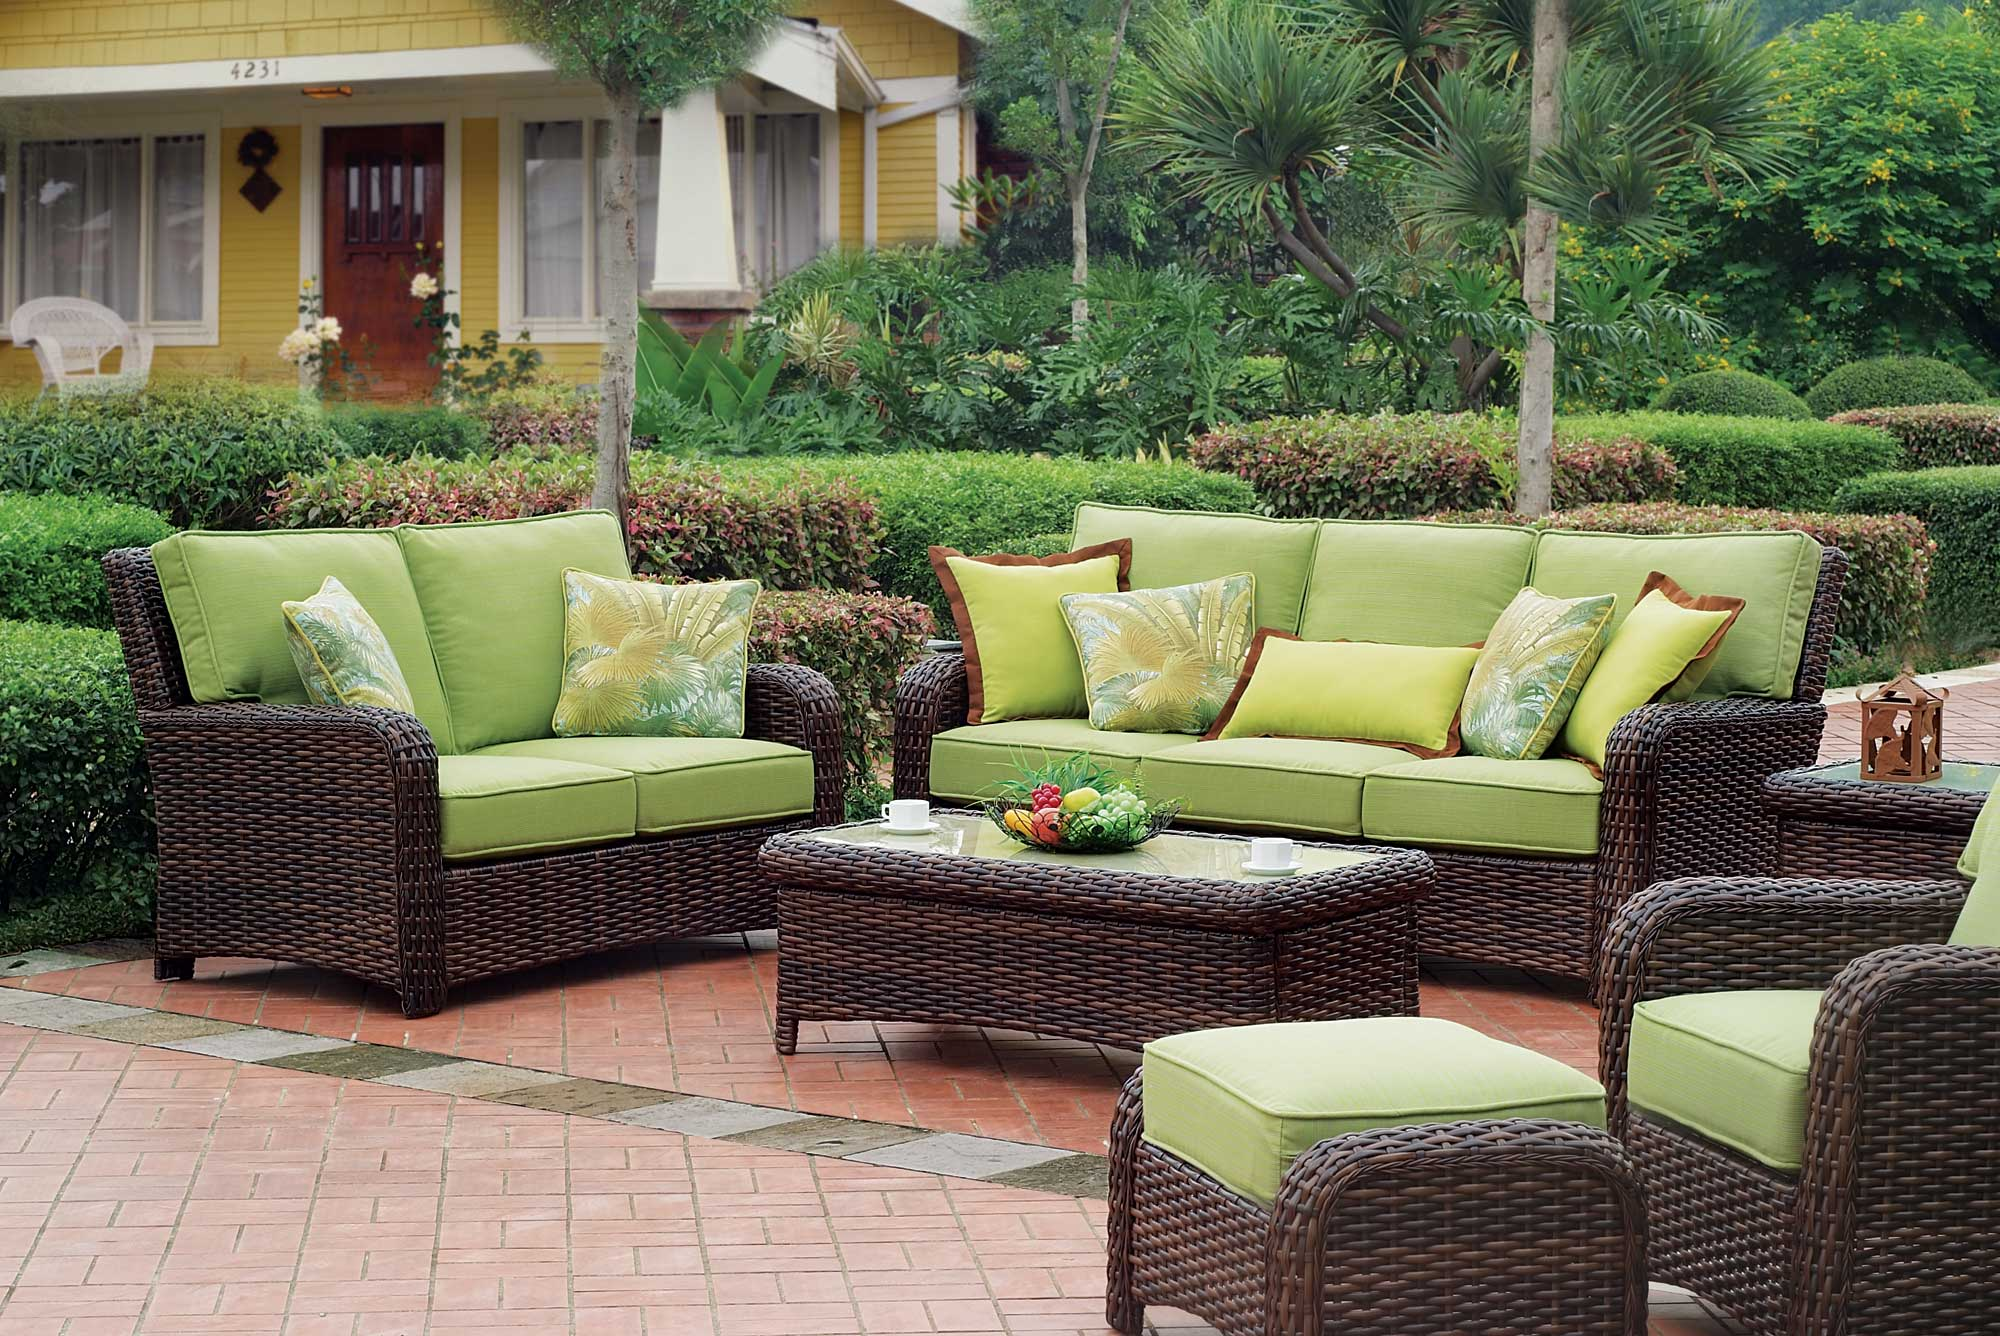 Garden Furniture Sofa Sets 3 rattan garden furniture classics for an evergreen look